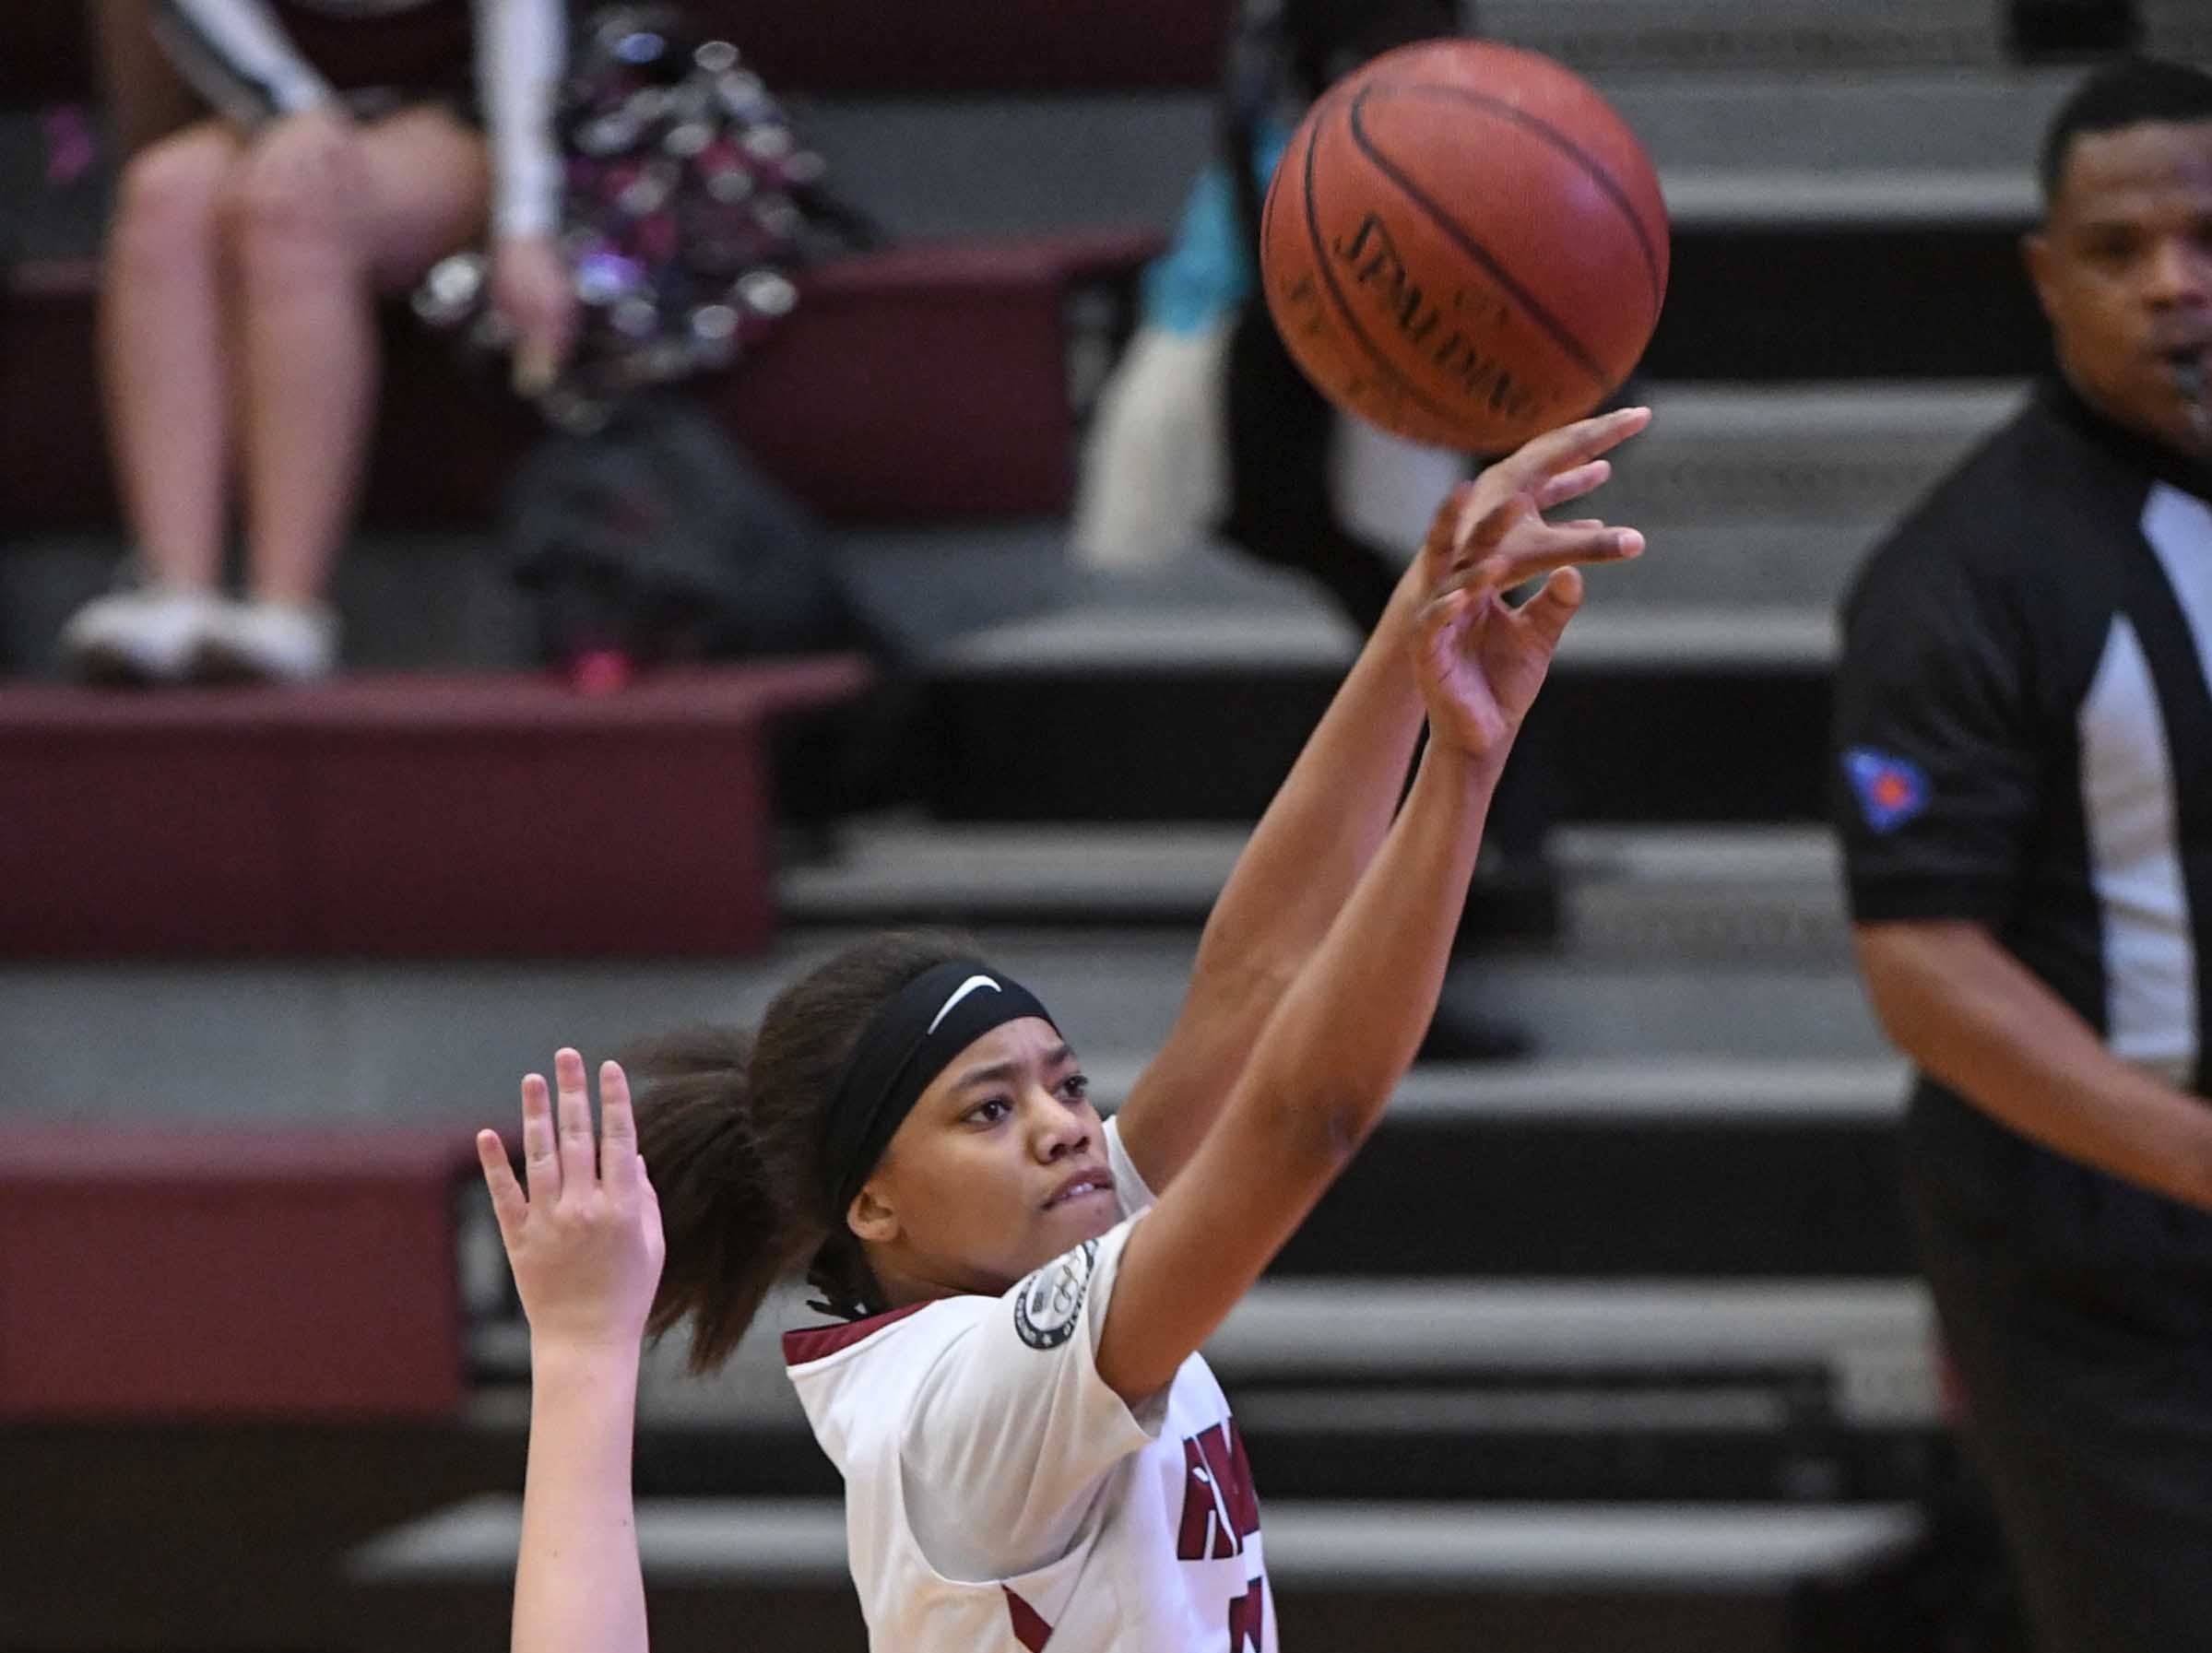 Westside sophomore Khia Pickens(13) shoots during the third quarter at Westside High School in Anderson on Friday.